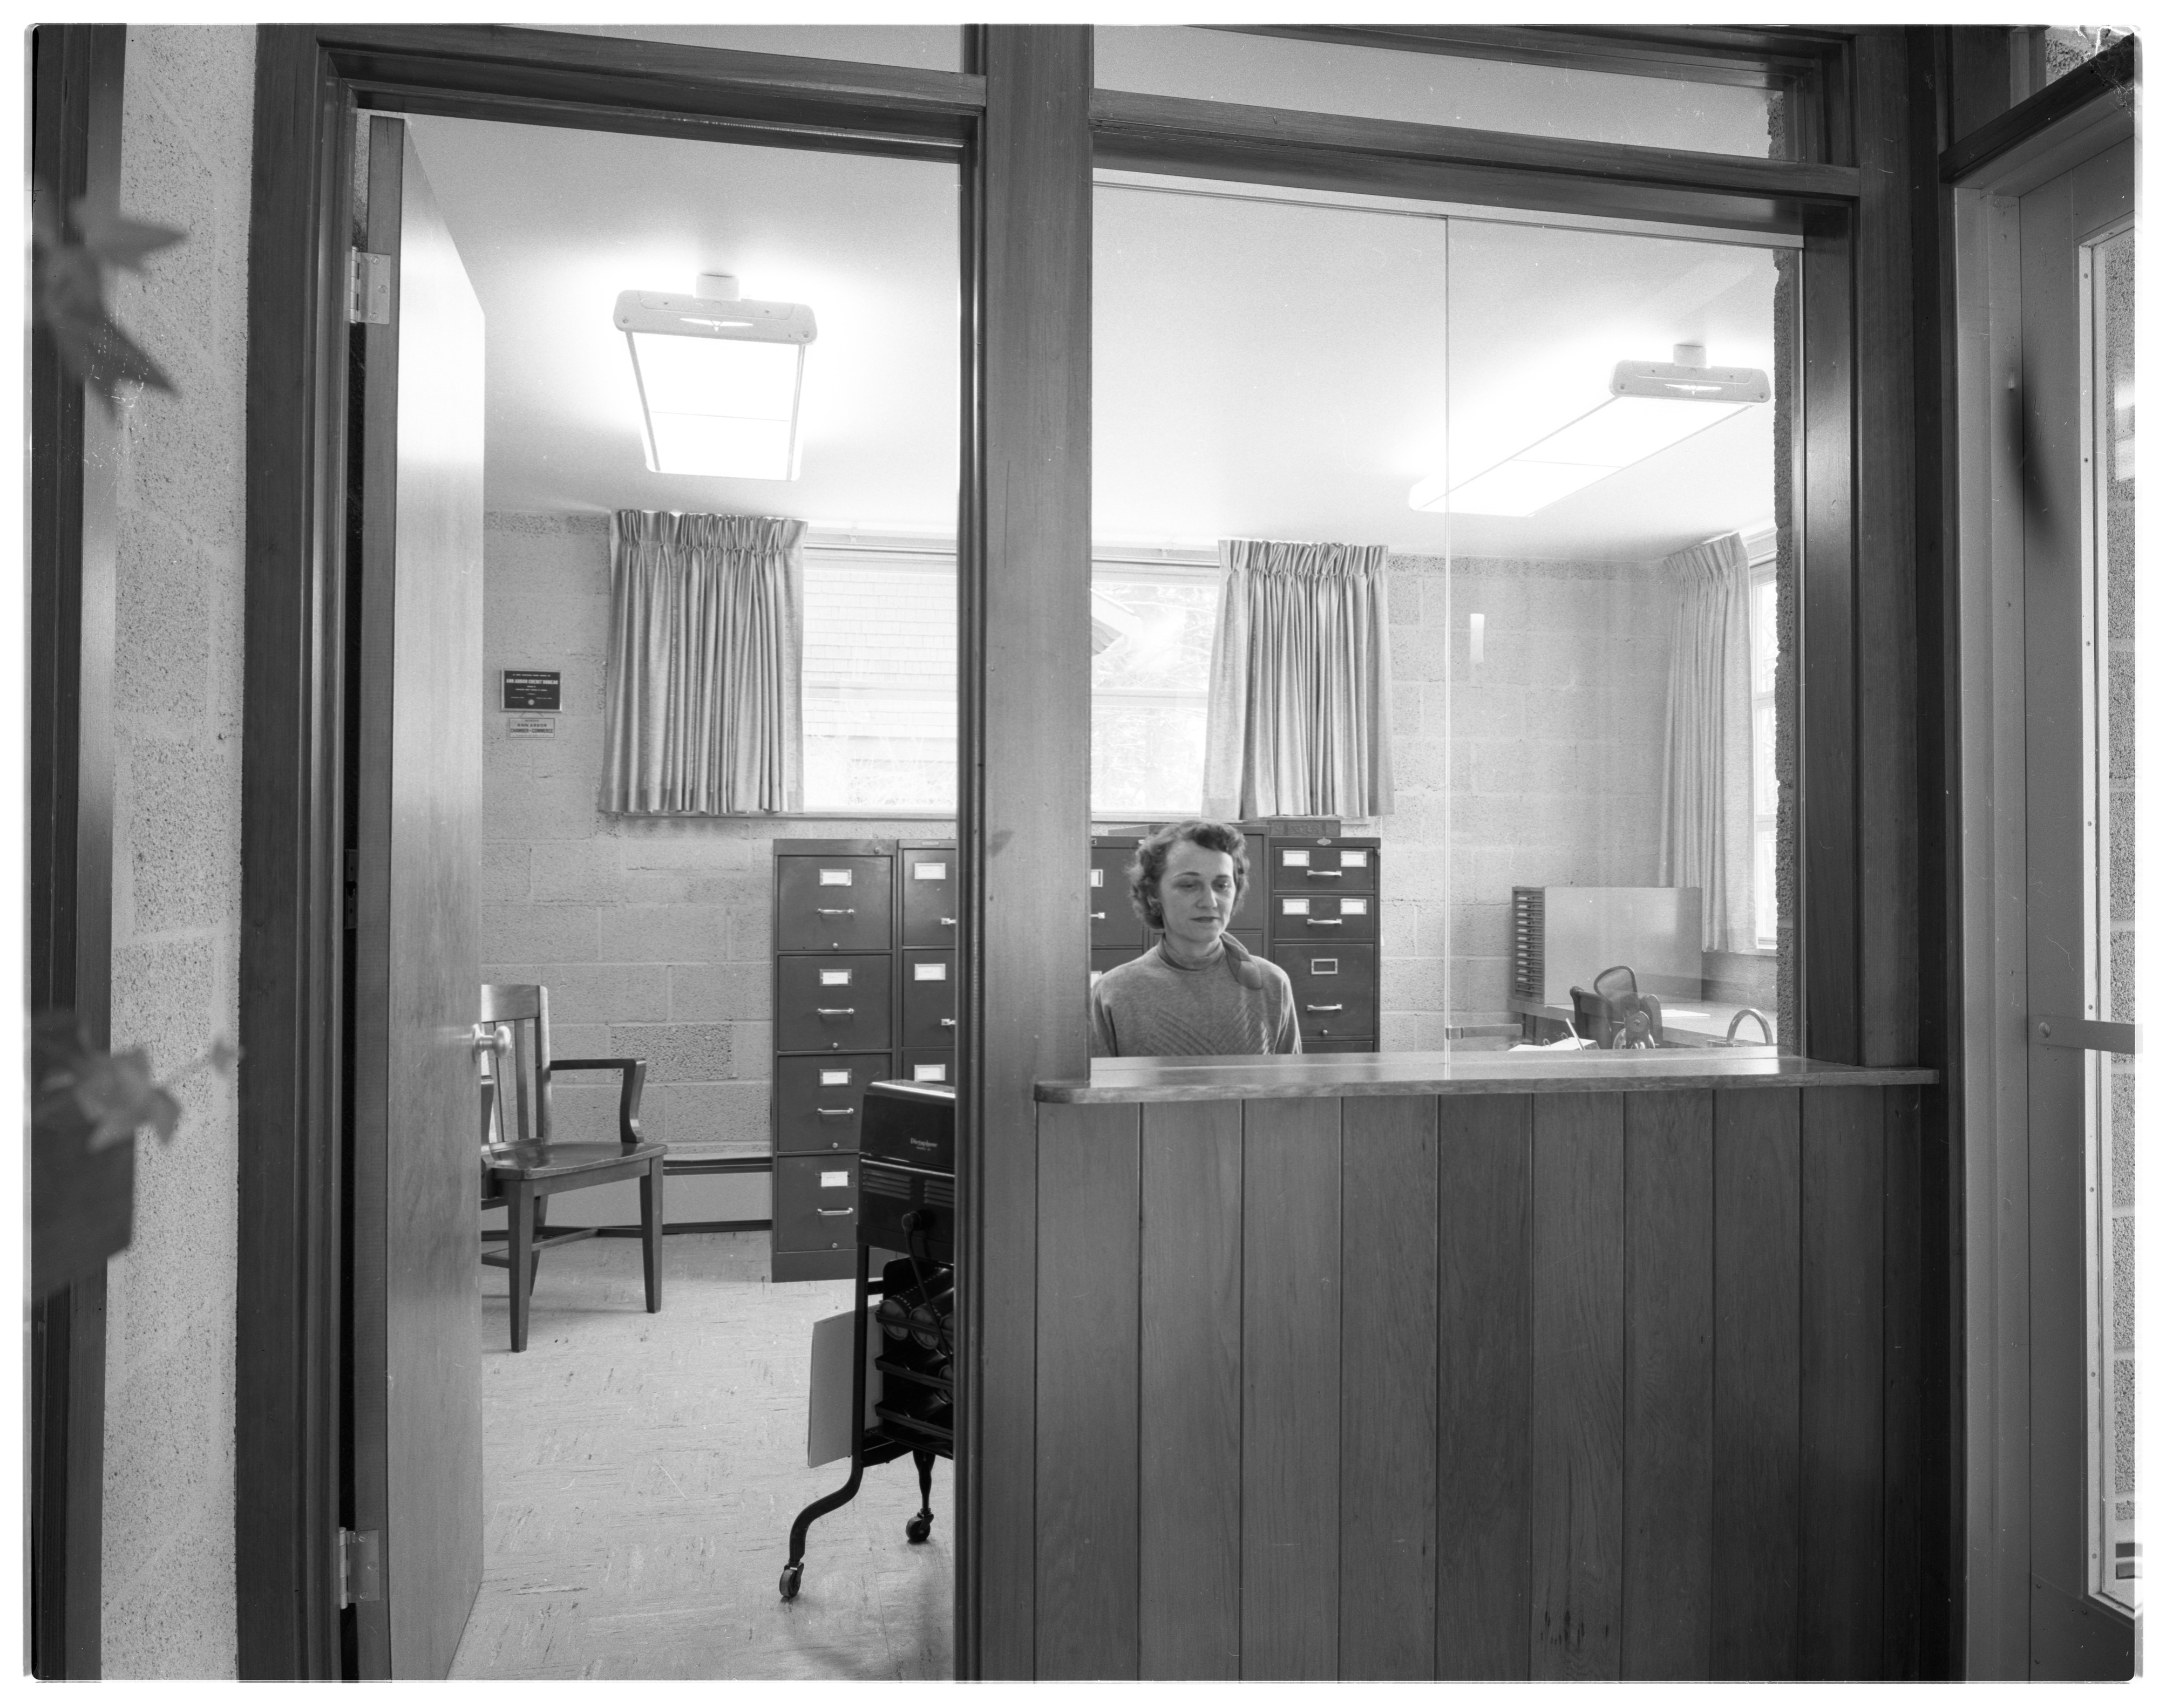 Dr. L. Dell Henry's Allergy Clinic - Business Office, January 1955 image